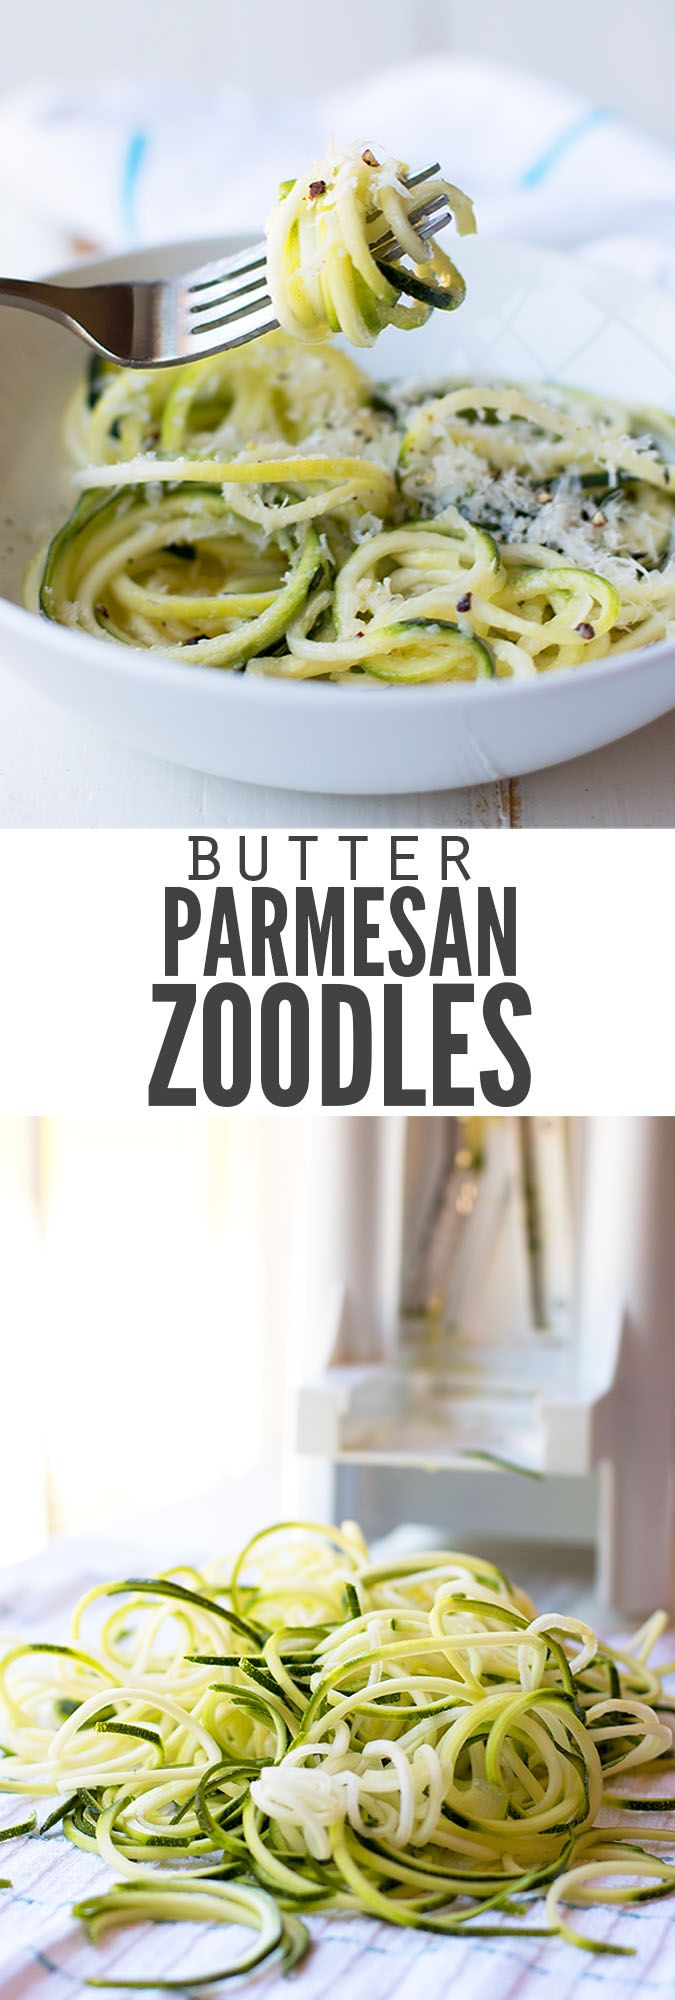 Hello healthy How to make easy nocook butter Parmesan zucchini noodles zoodles that are ready in just 10 minutes Add garlic if you want but its a great light dish and the...